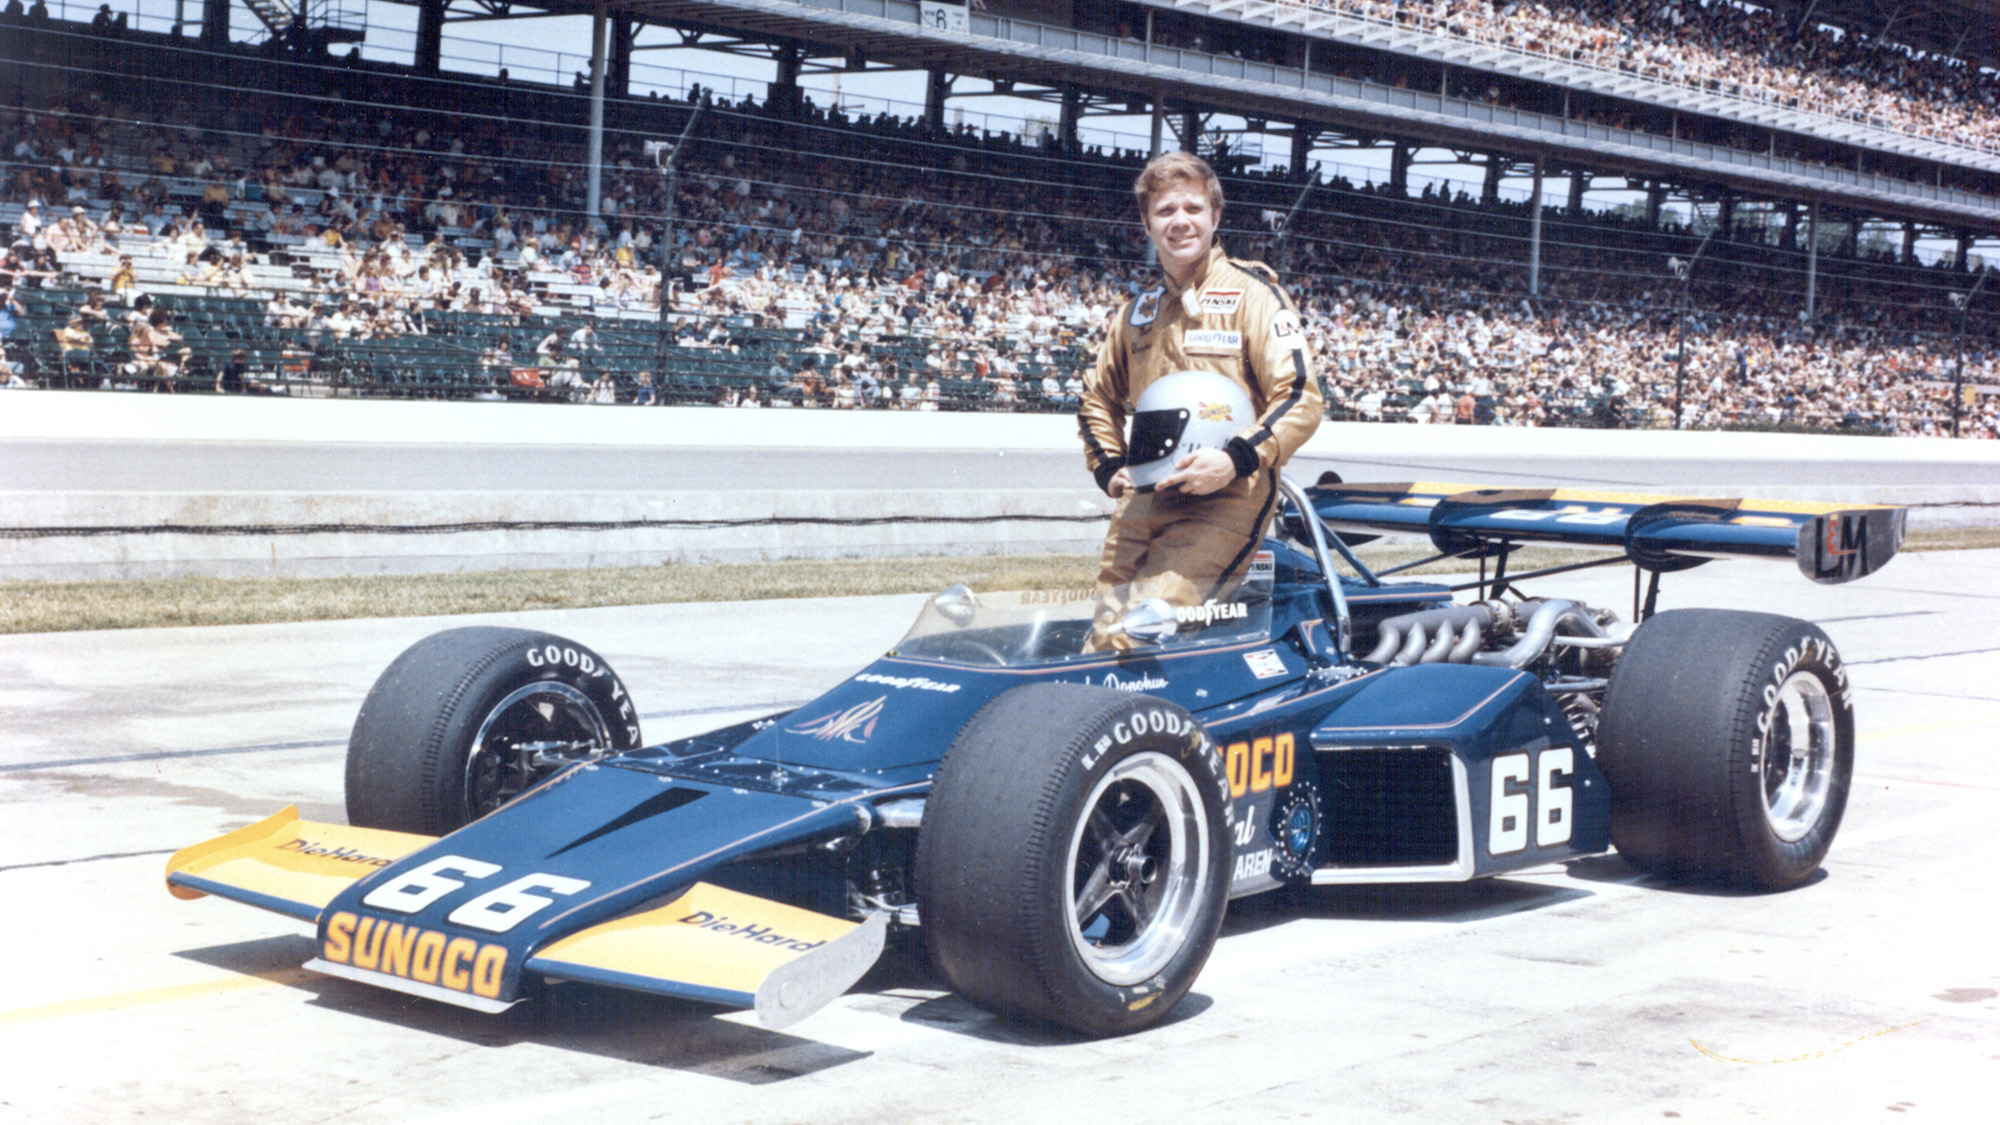 Mark Donohue poses next to his 1972 Indy 500-winning car